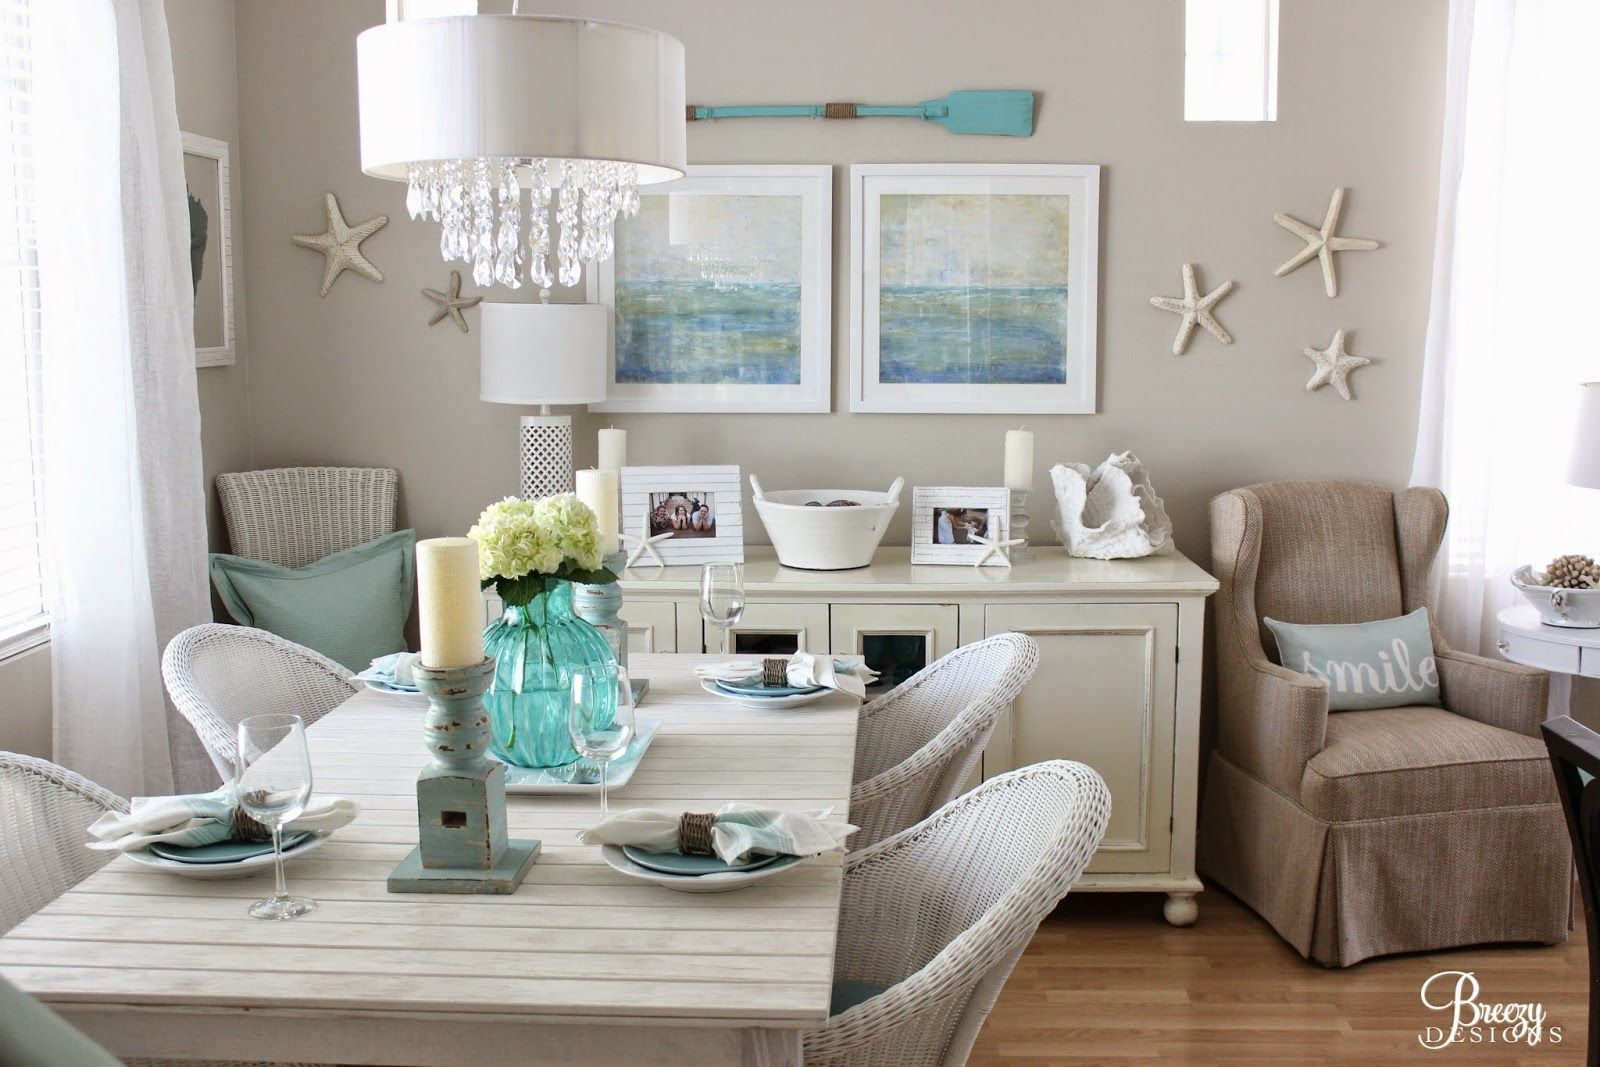 Lovely Beach Cottage From House Of Turquoise Guest Blogger Breezy Designs